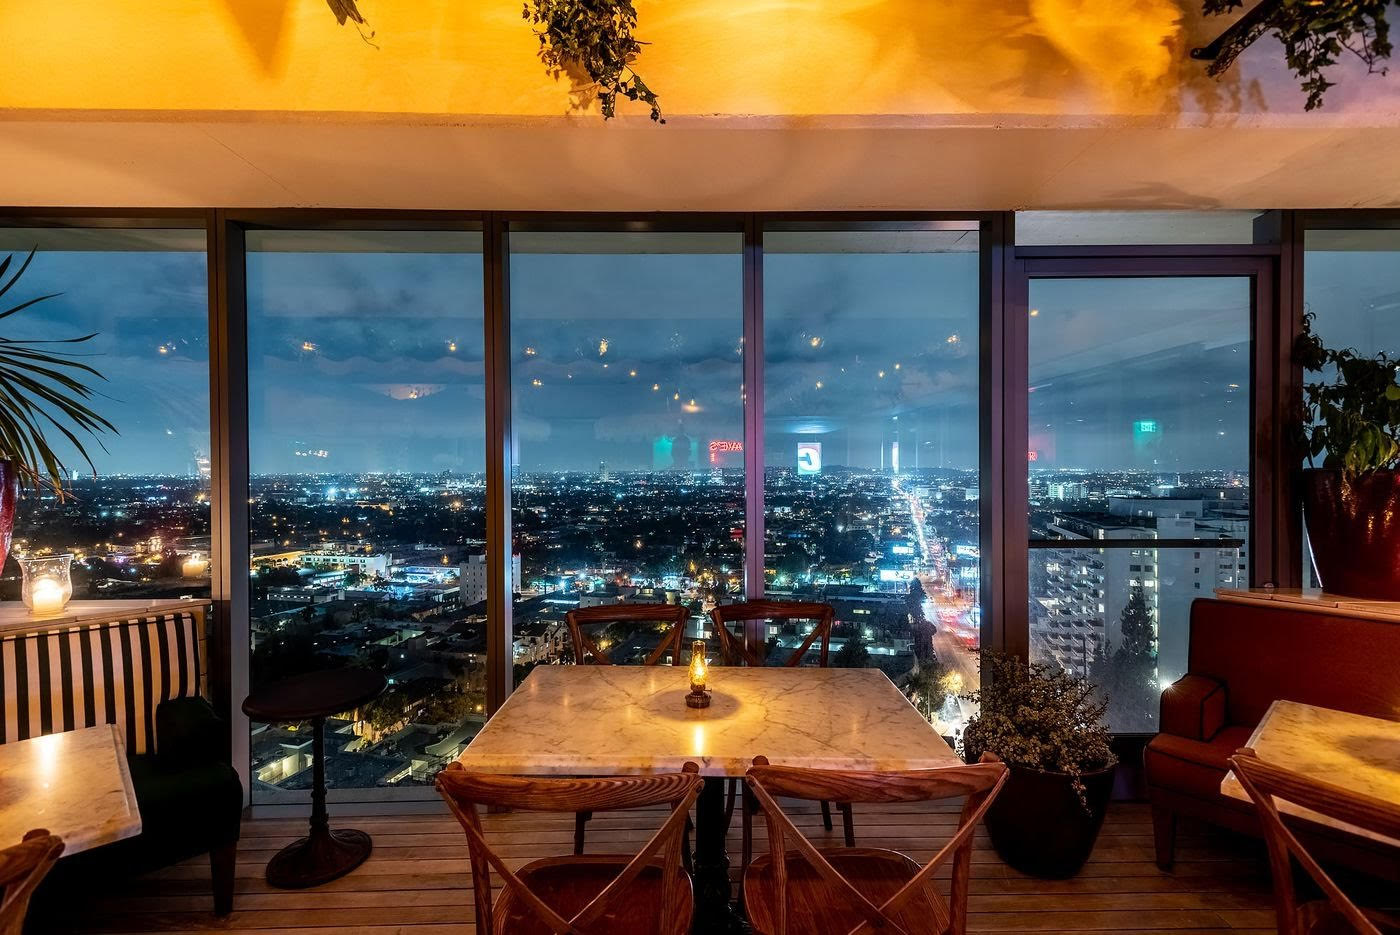 Harriet S Rooftop At The 1 Hotel West Hollywood New